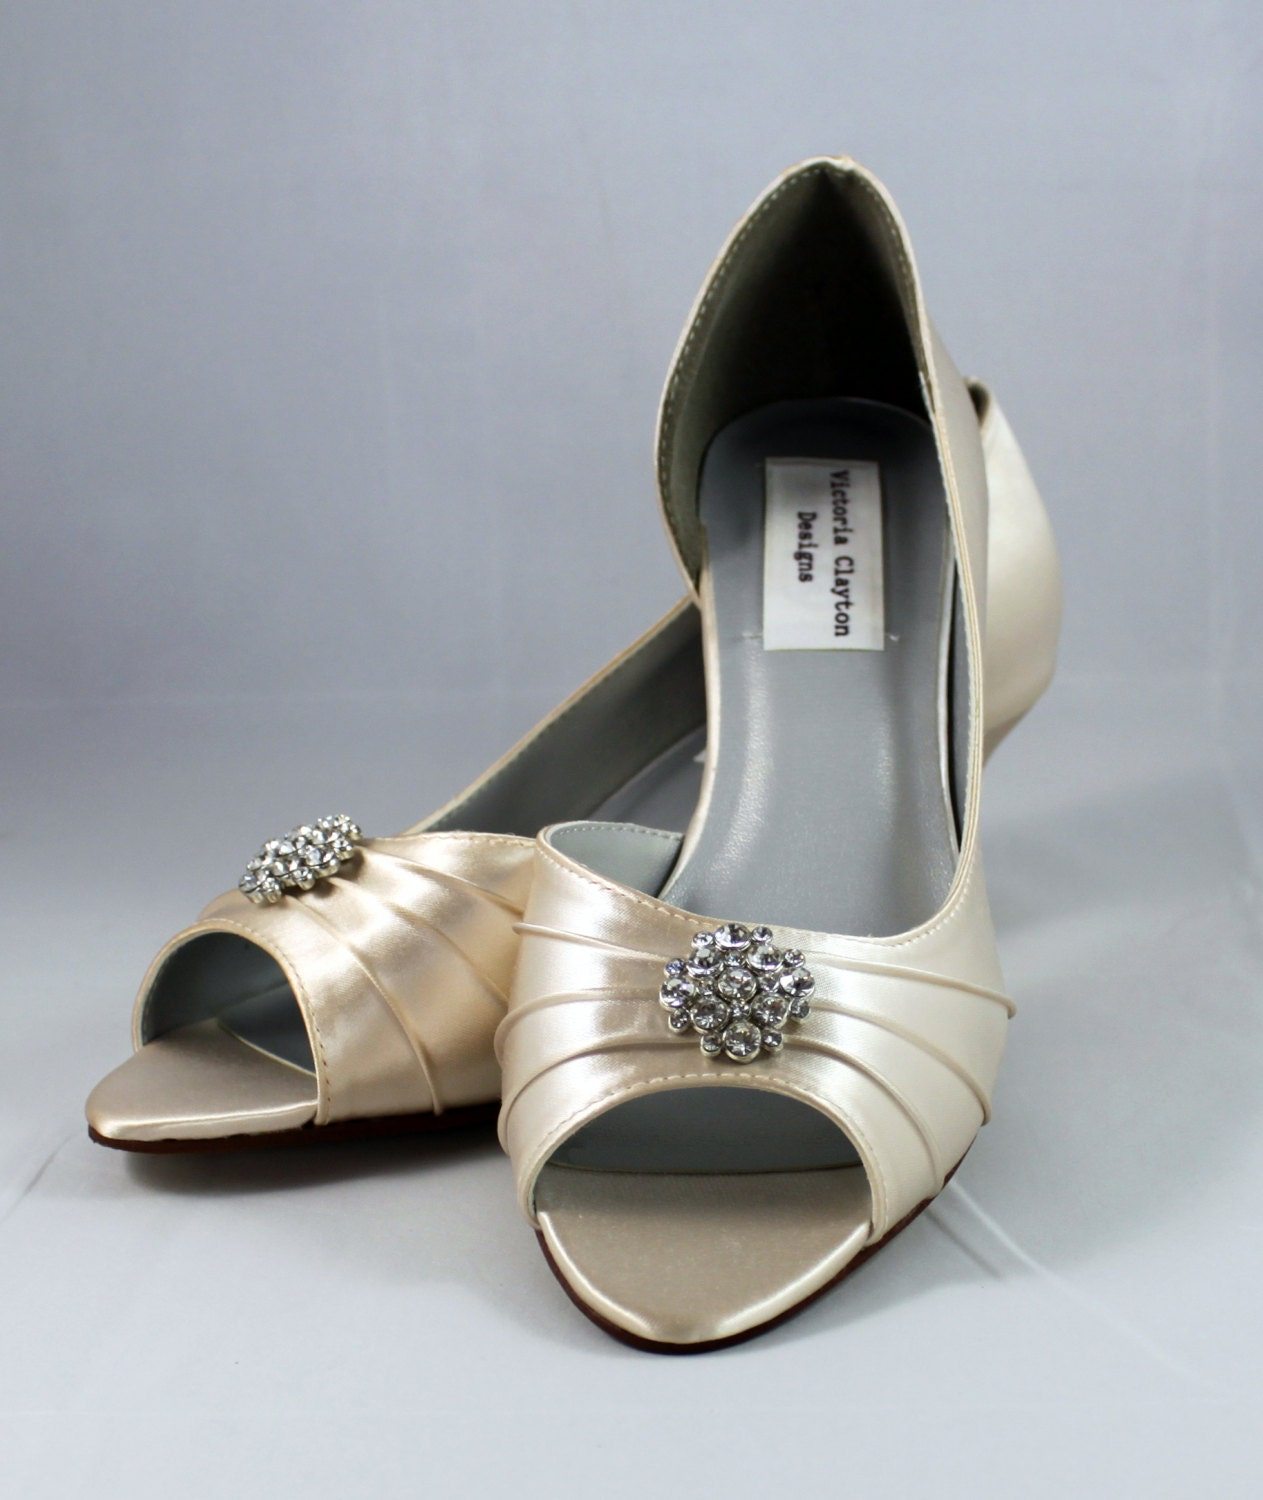 1 Inch Heels For Wedding: Champagne Wedding Shoes Low Heel 1.75 Inch By